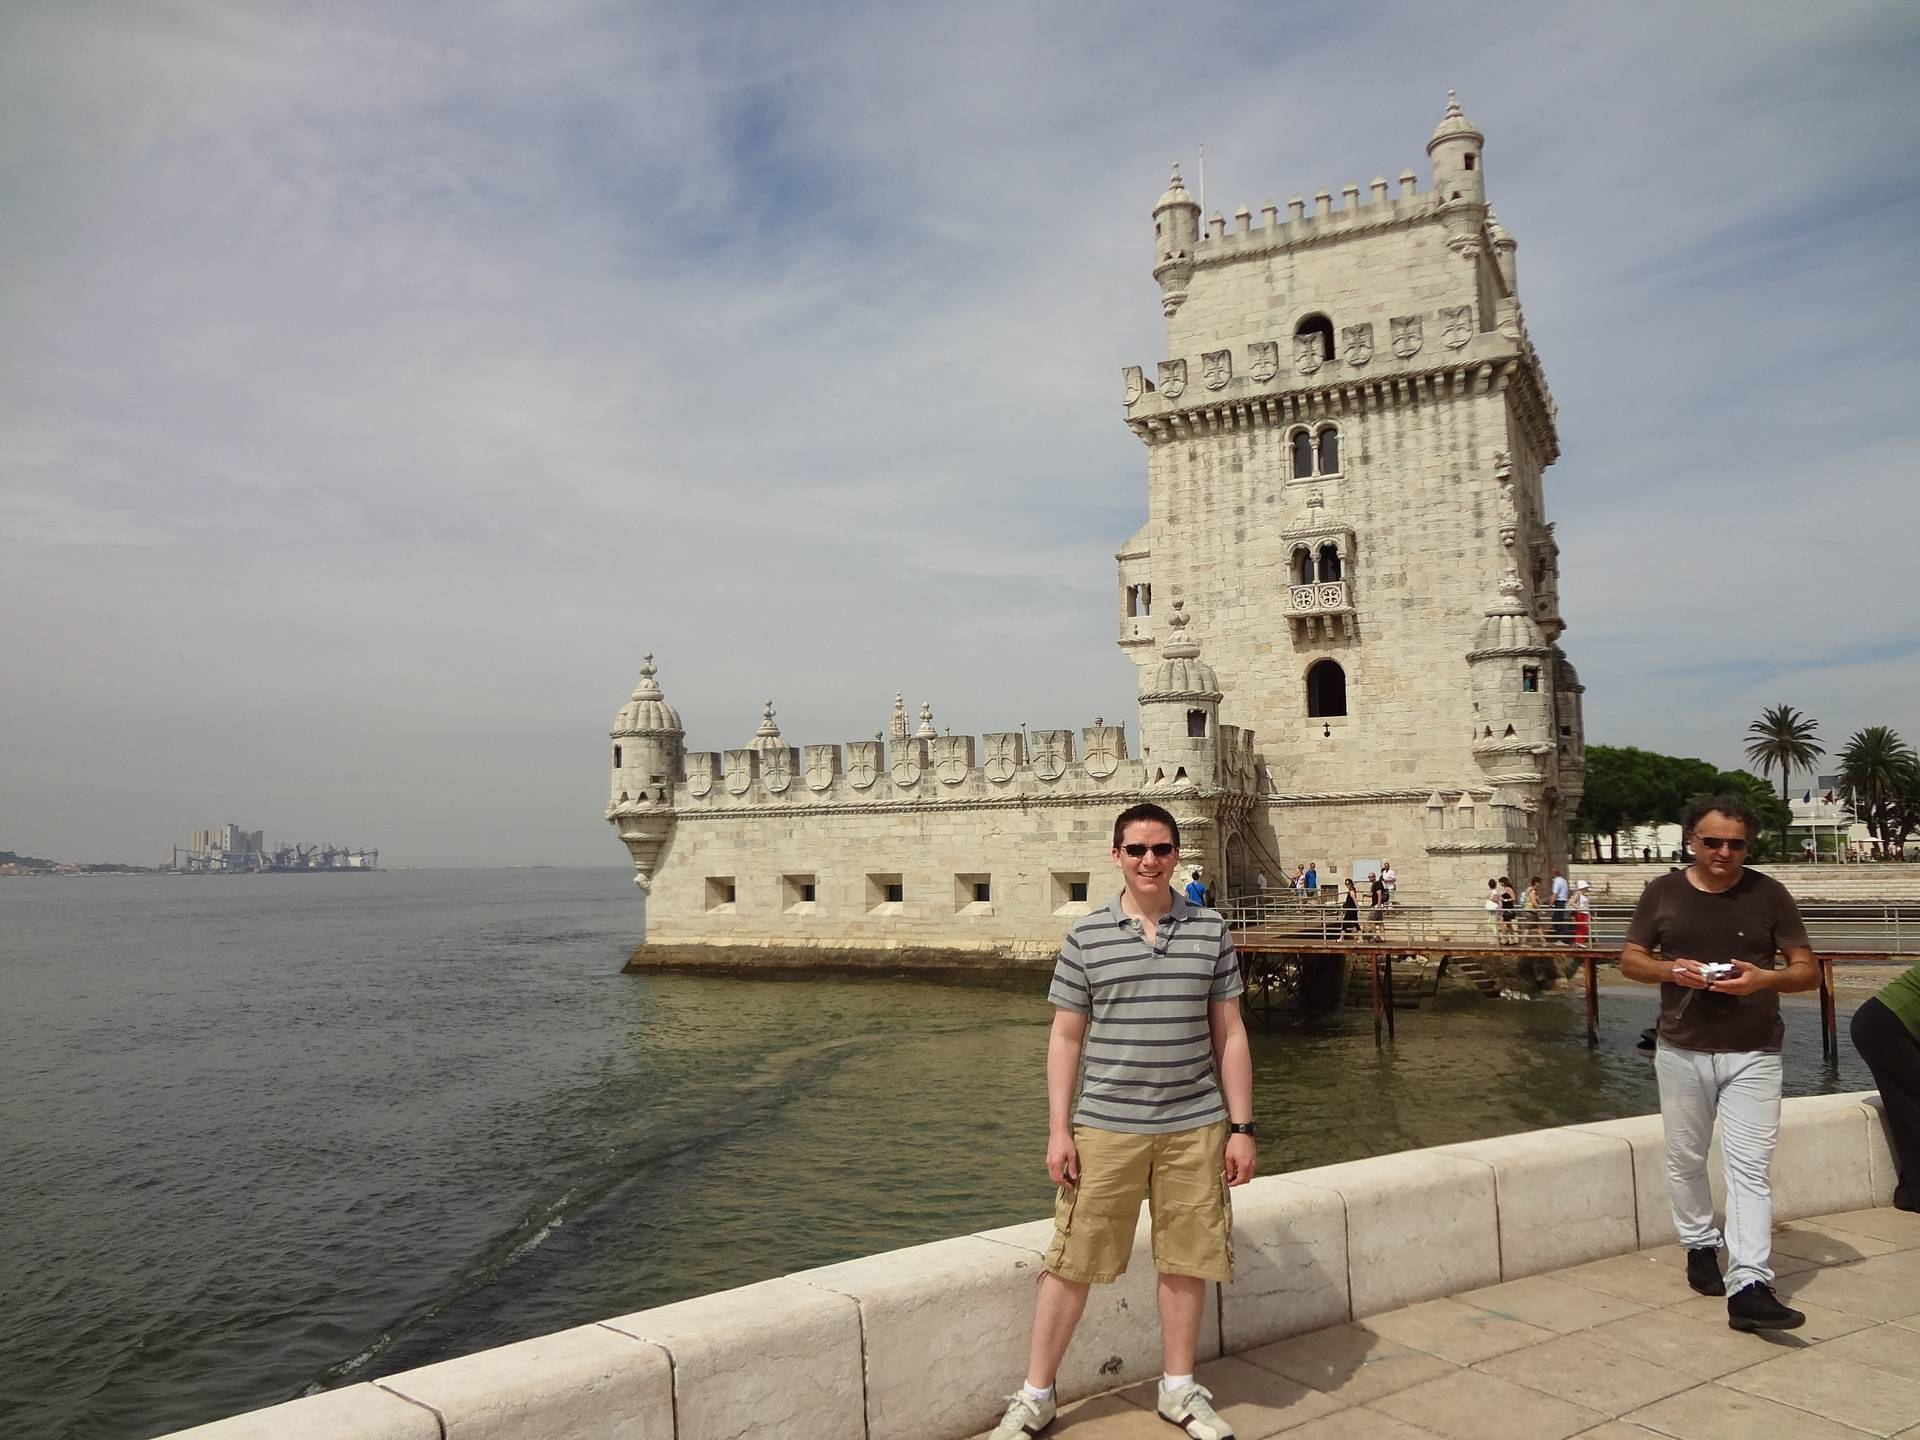 Ricky Hanson at the Tower of Belem